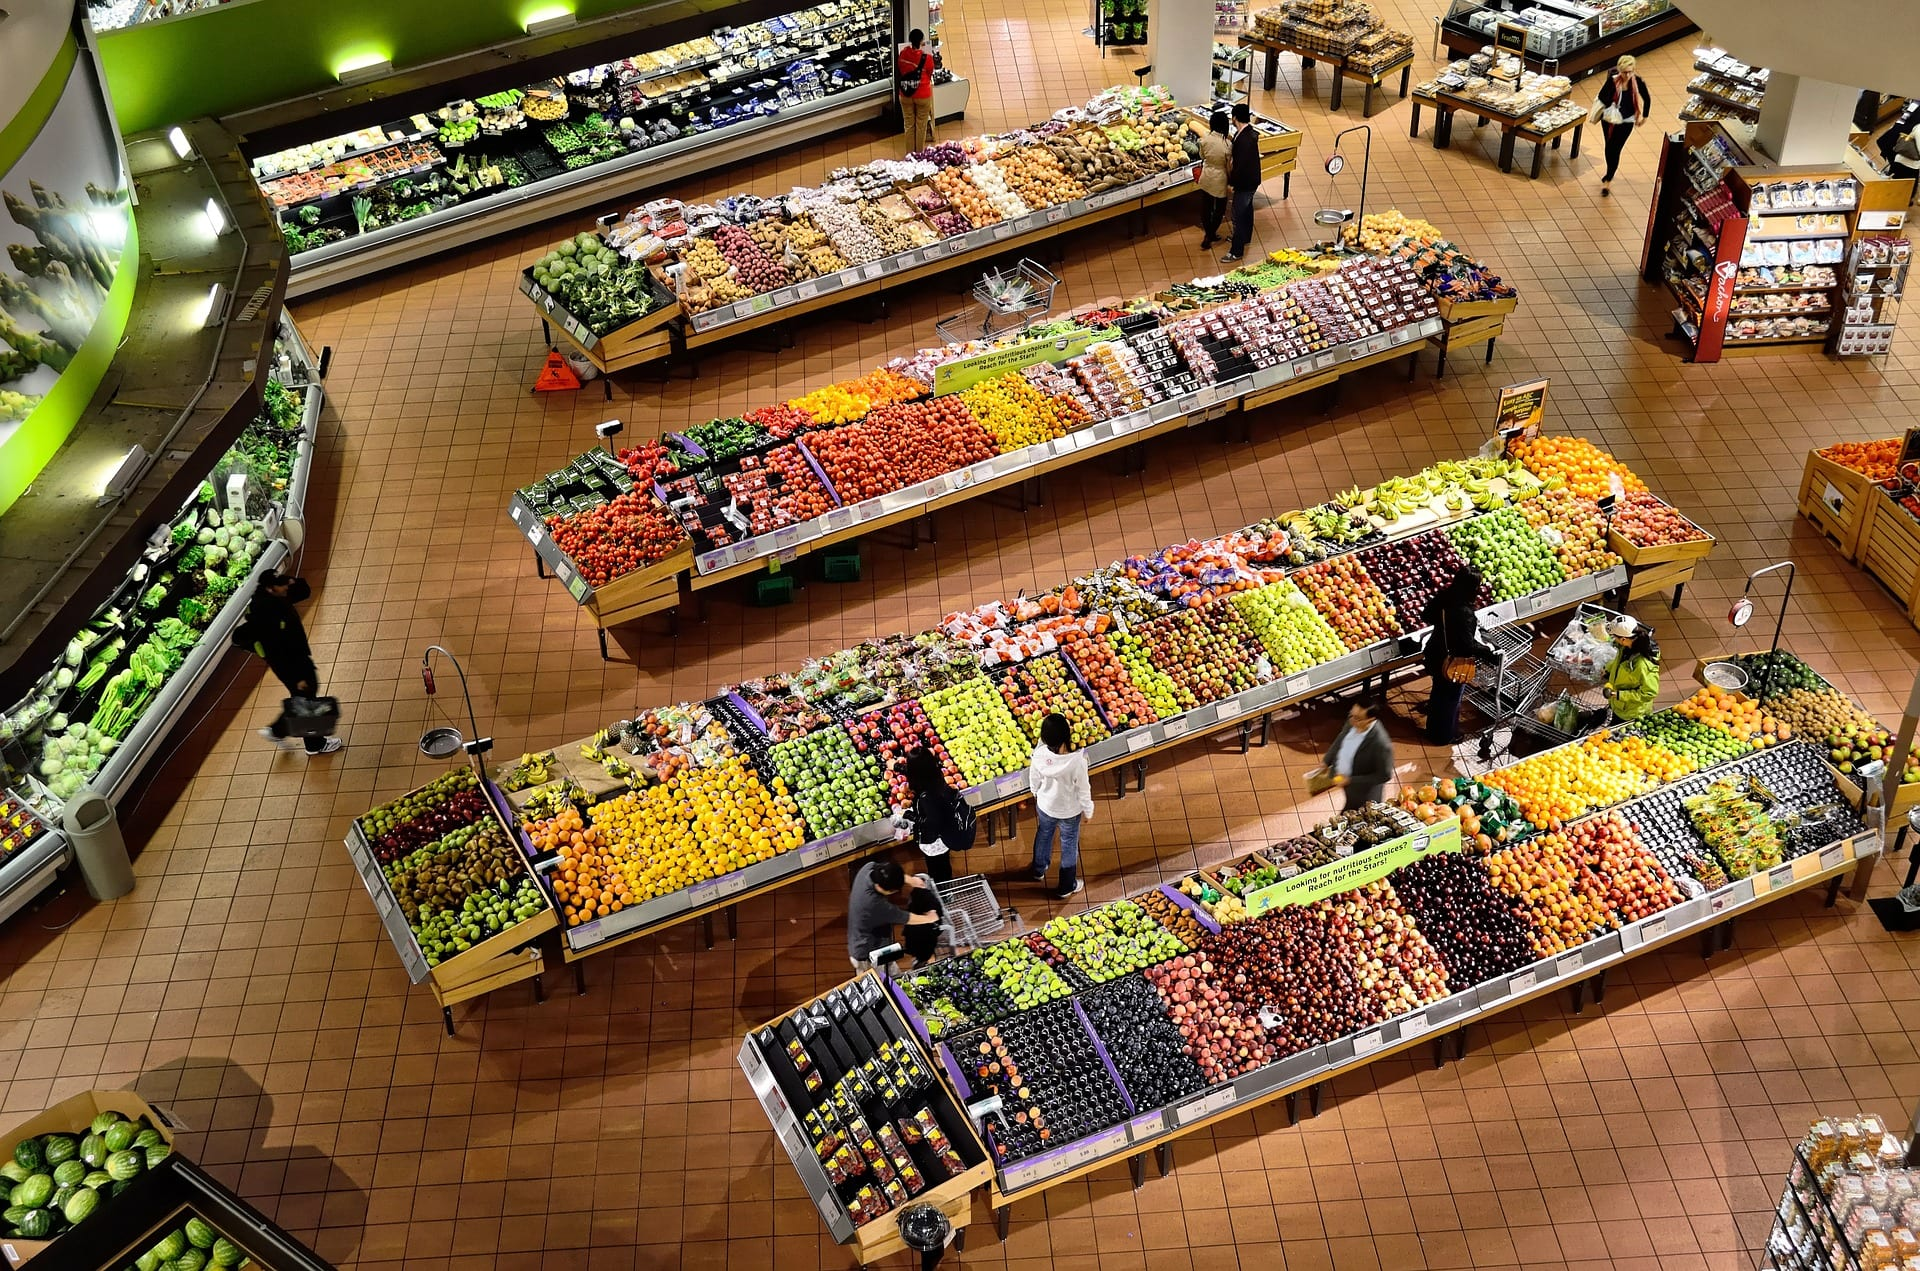 Overhead view of product section in grocery store